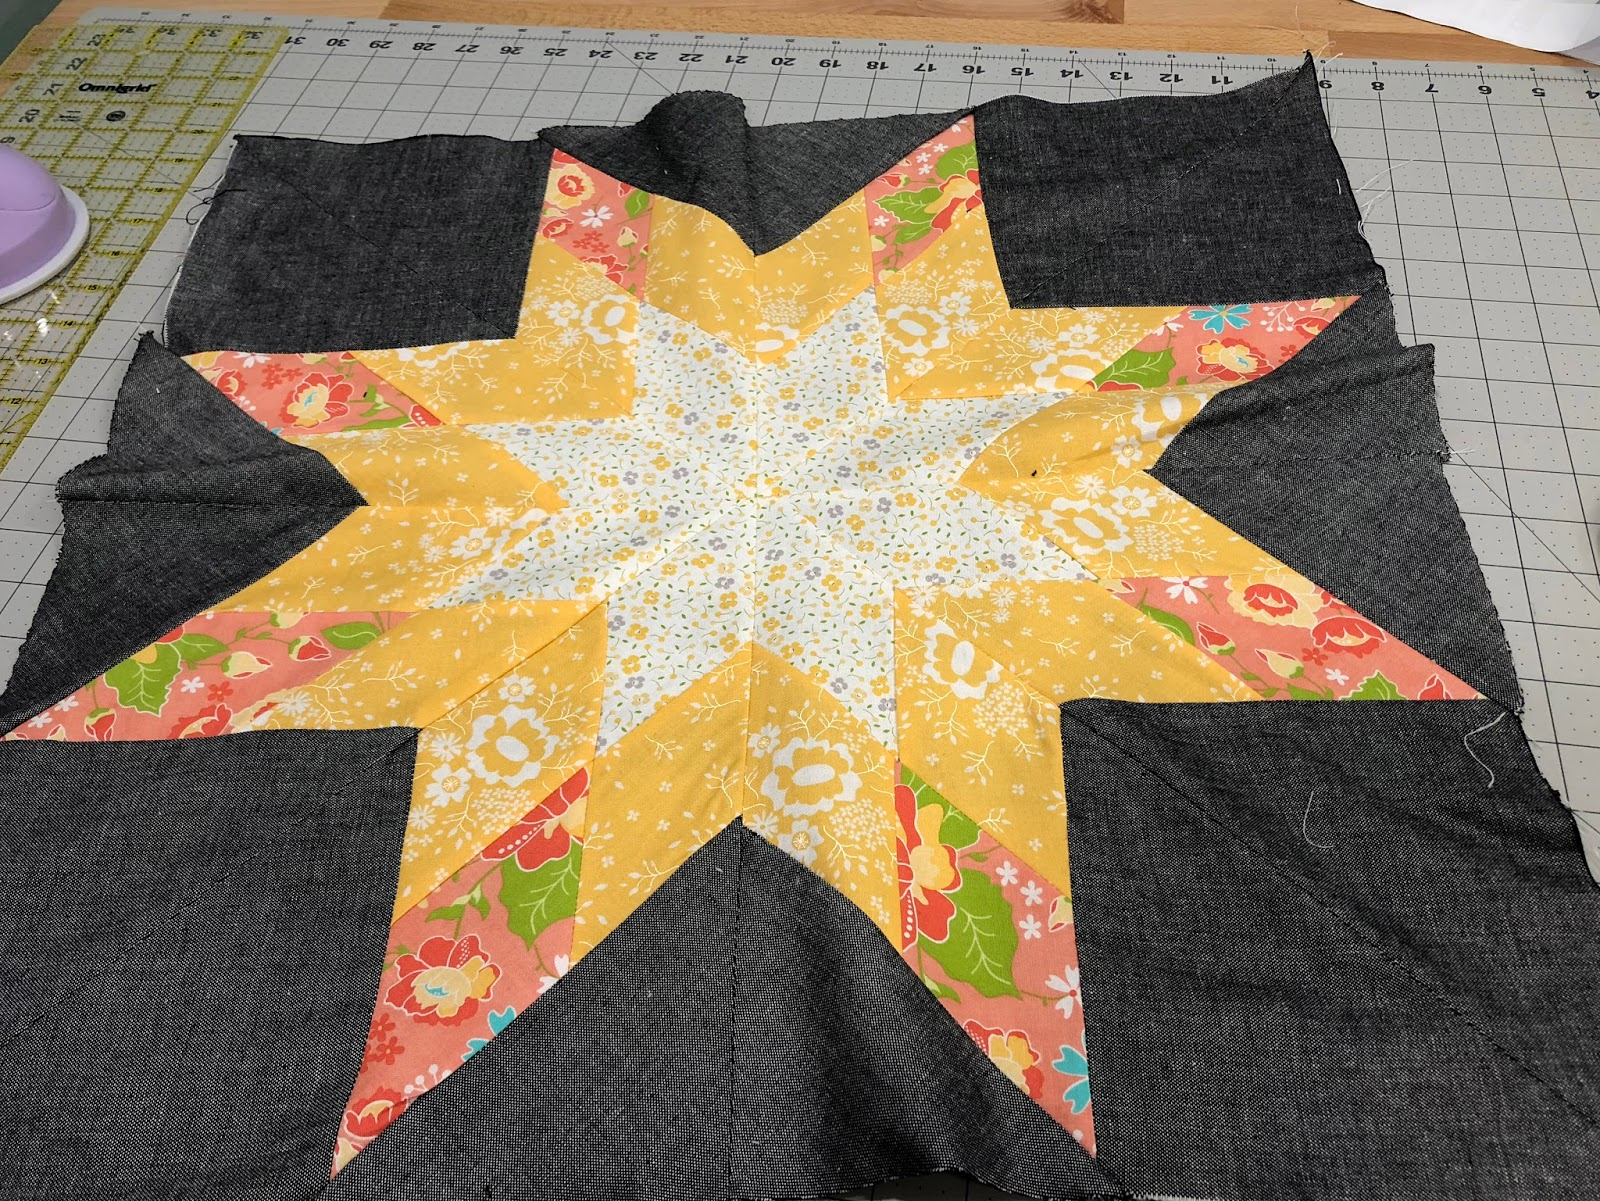 The Bees Knees - A Quilting Bee : bee quilt pattern - Adamdwight.com